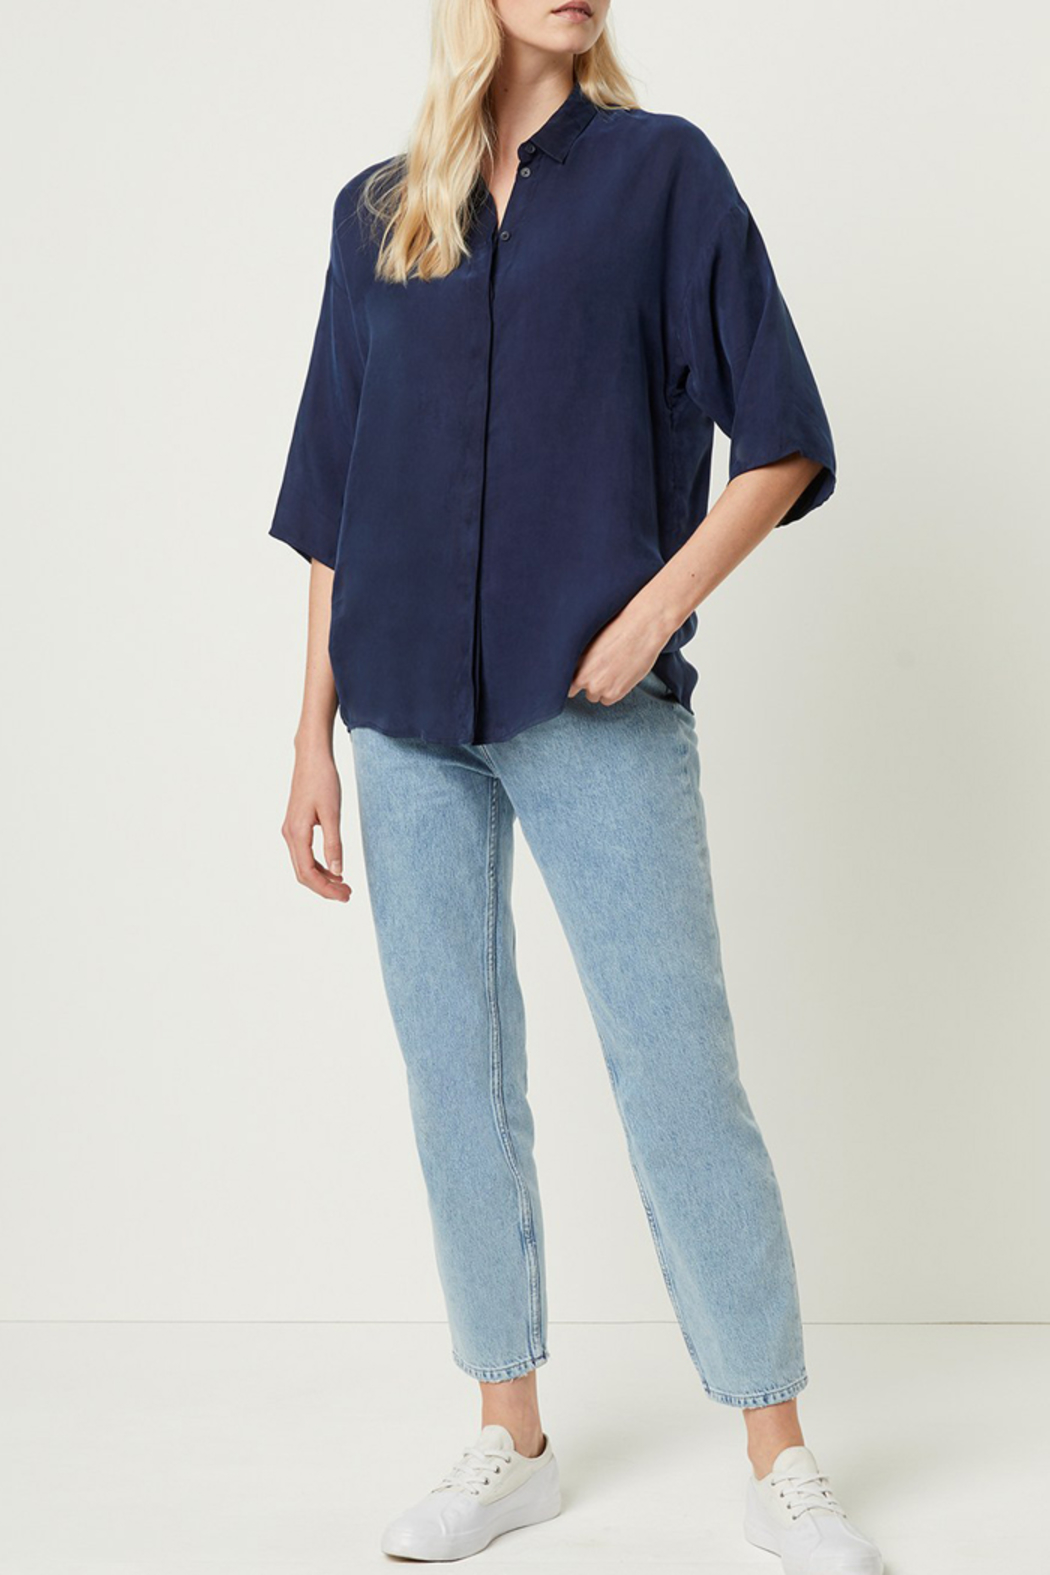 French Connection CUPRO BUTTON DOWN TOP - Main Image